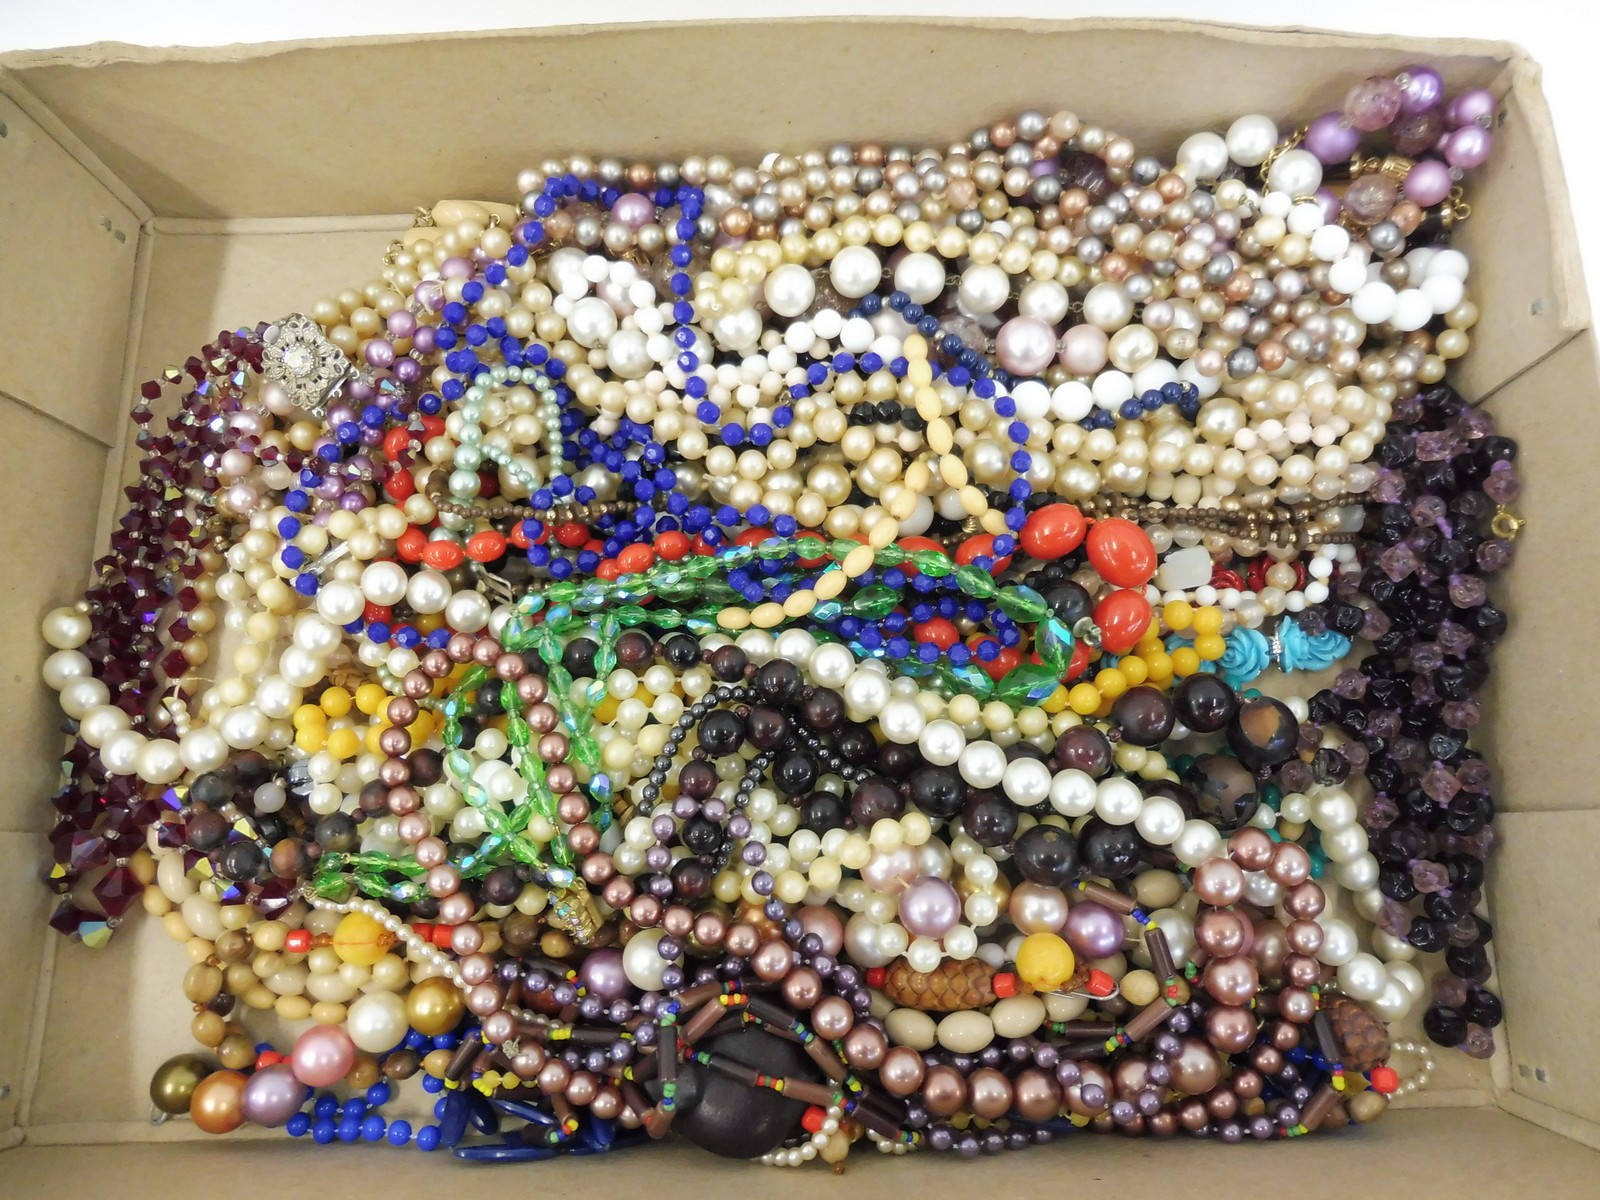 Lot 44 - A tray of assorted necklaces including pearls, beads etc.